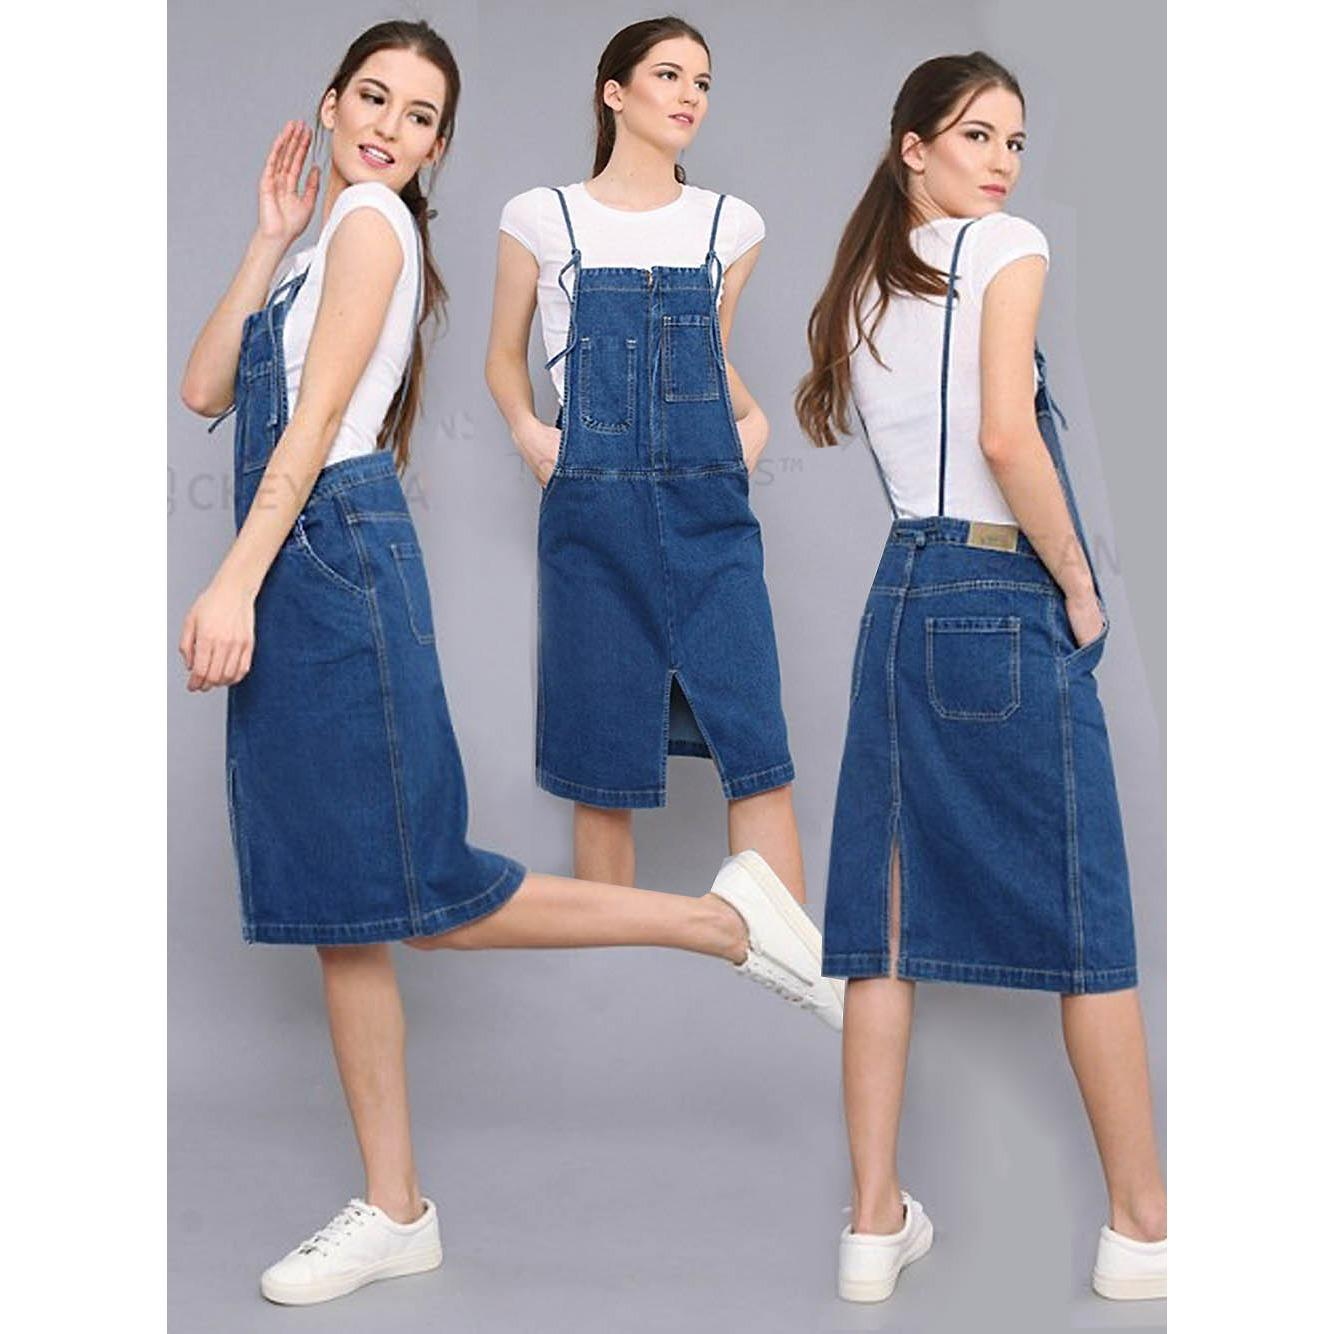 Home · 168 Collection Dress Celine Overall Jeans Biru Tua; Page - 3. Jumpsuit Dress Wanita Feminim Young CW 337 Overall Jeans Soft Blue Tanpa Inner